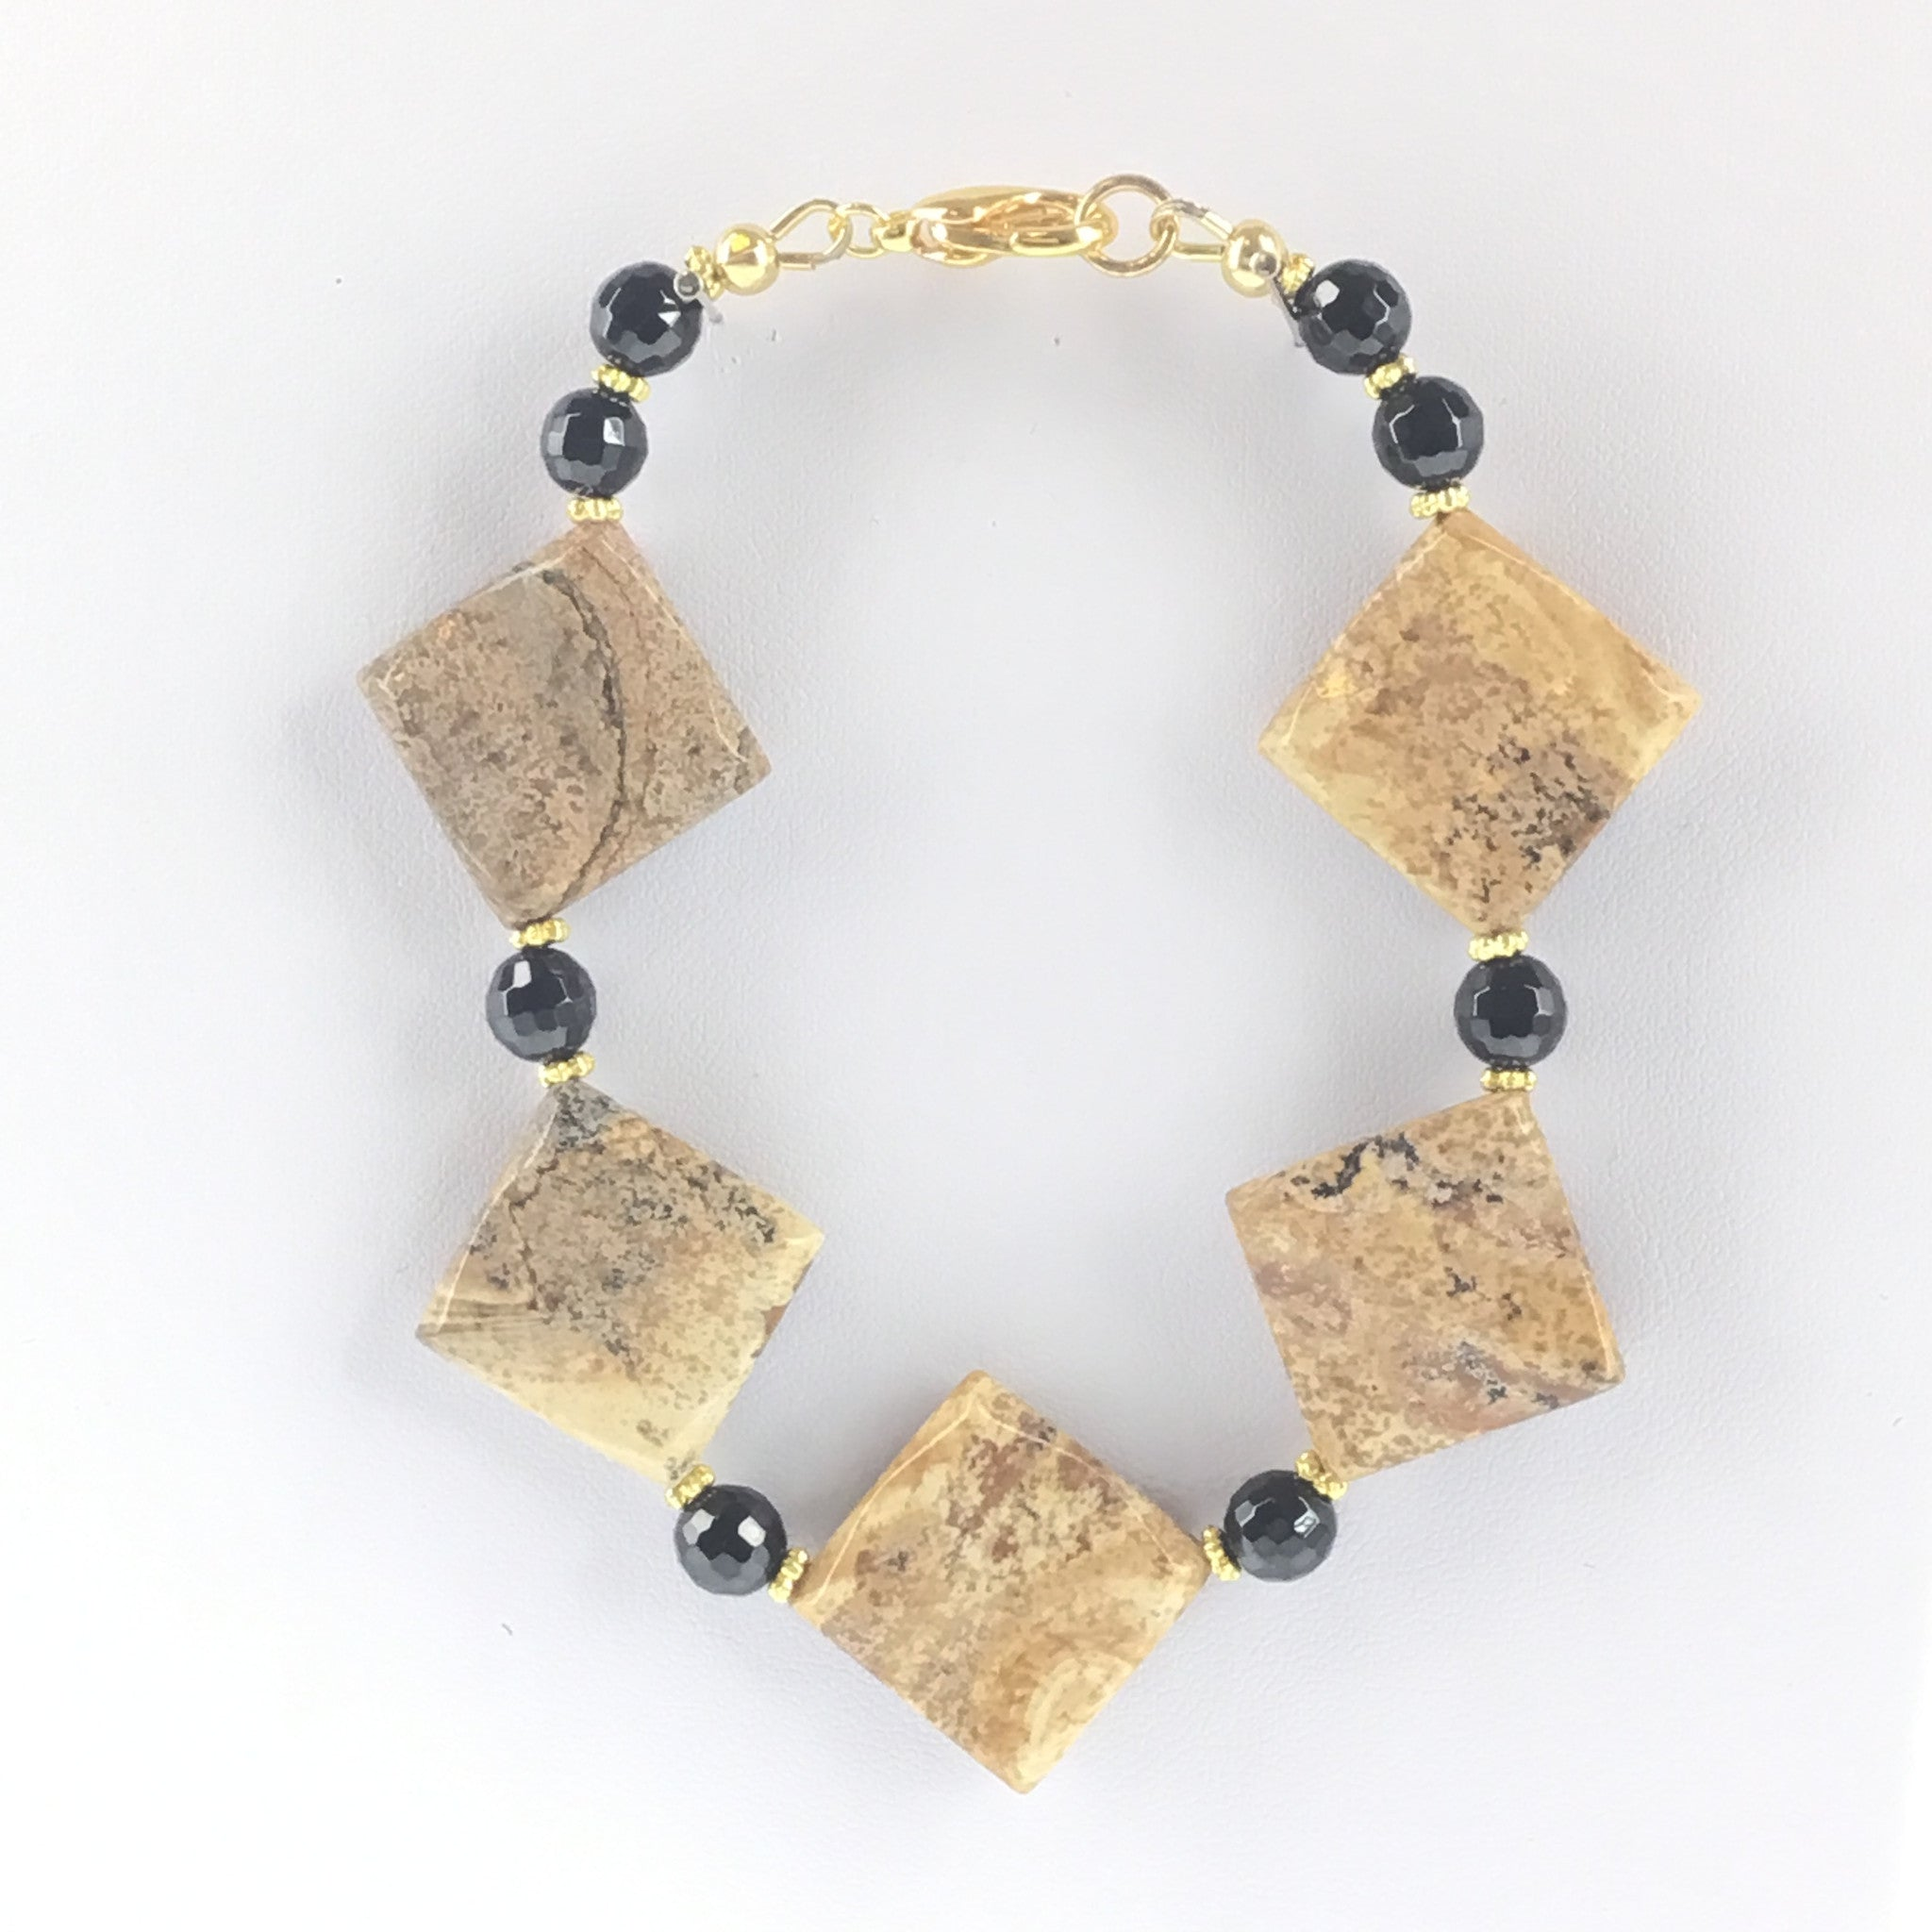 Picture Jasper and Black Spinel Bracelet - Real Chic Boutique  - 3